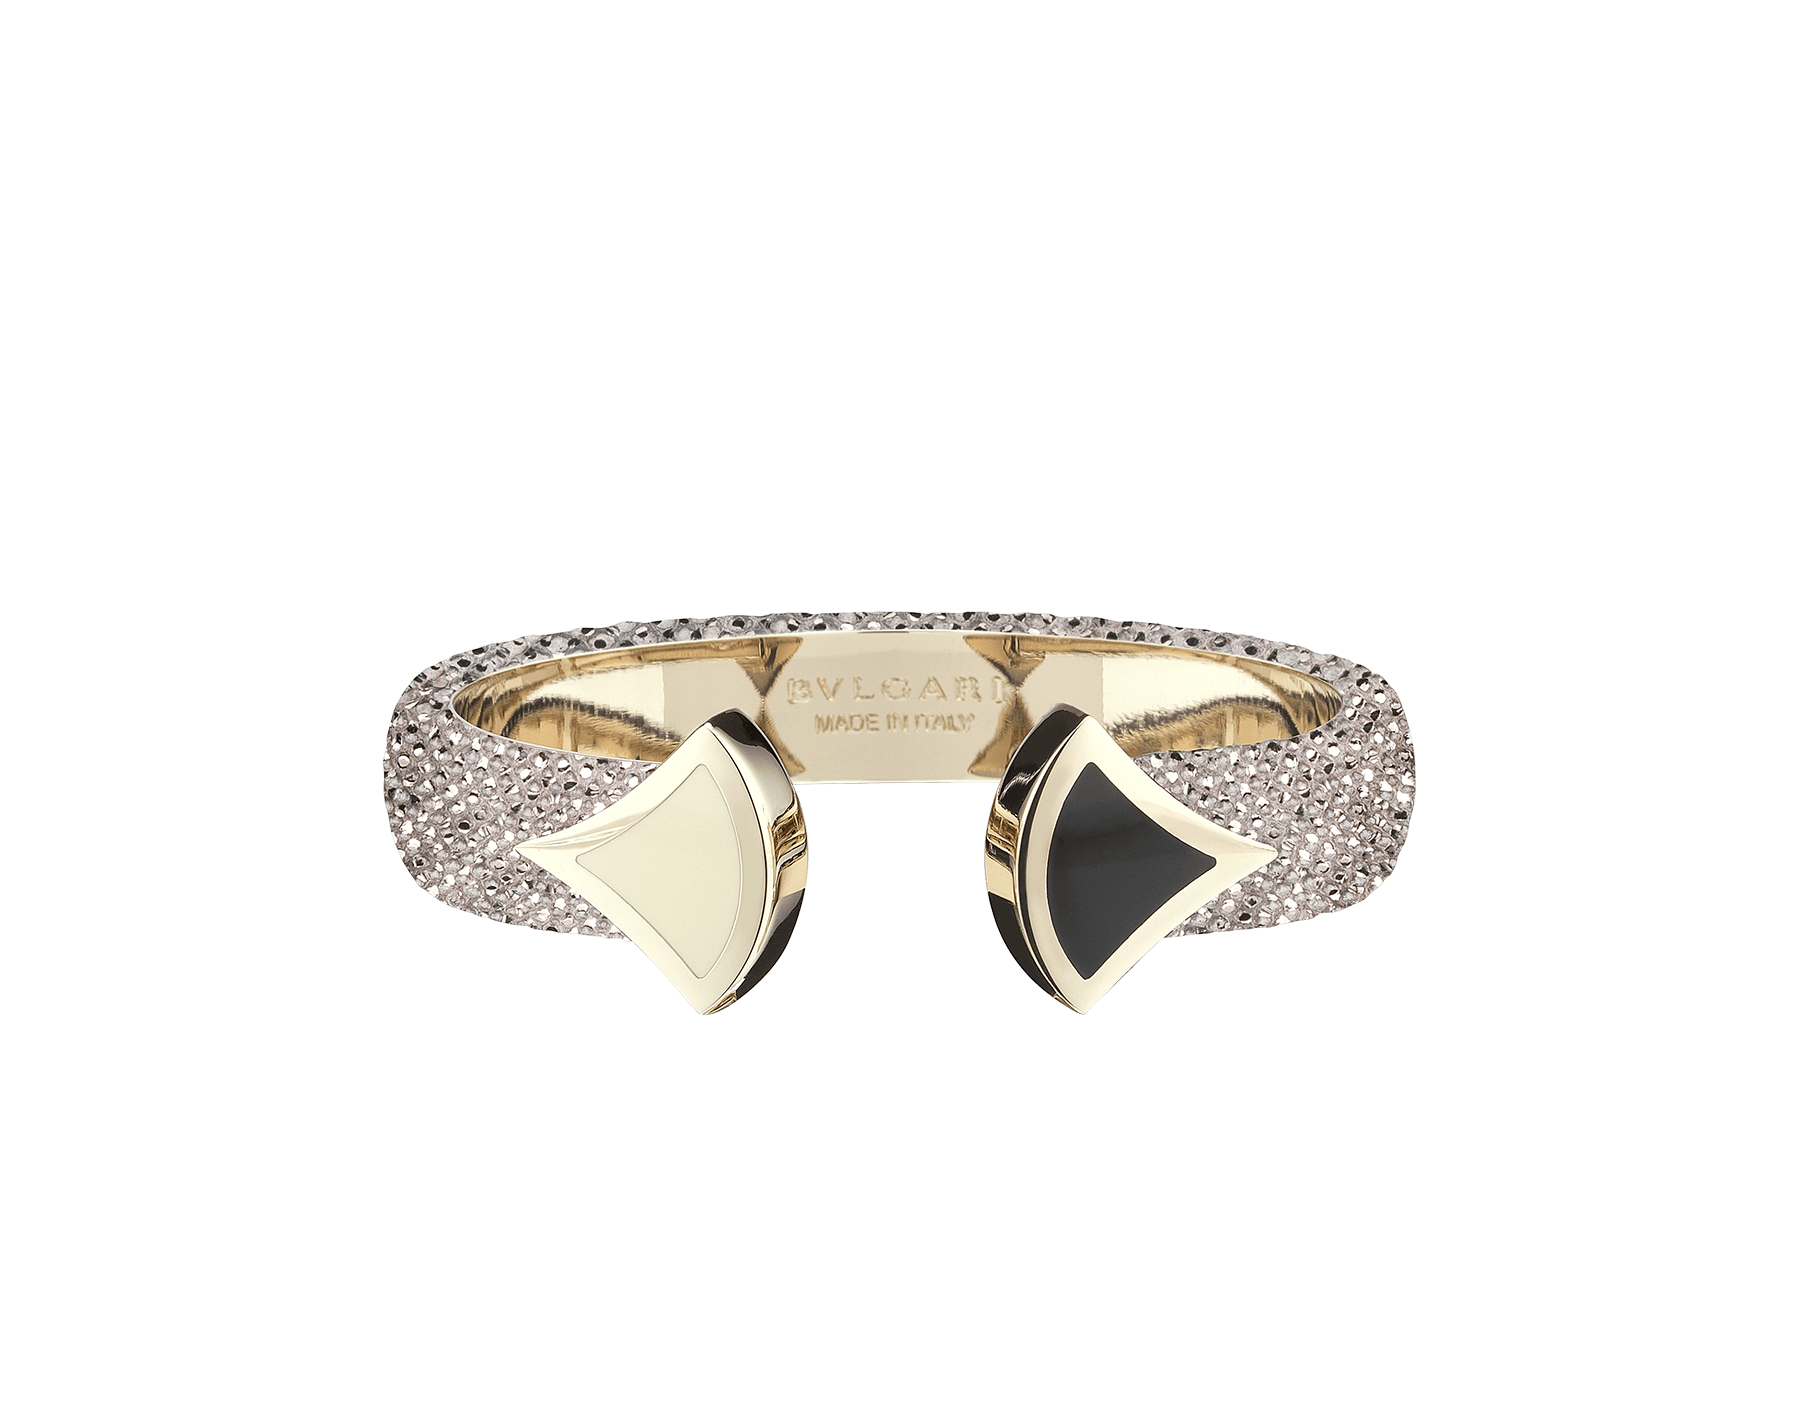 Bracelet in royal sapphire galuchat skin, with iconic contraire brass light gold plated DIVAS' DREAM motif in black and white enamel. DIVA-CONTRAIR-M image 3